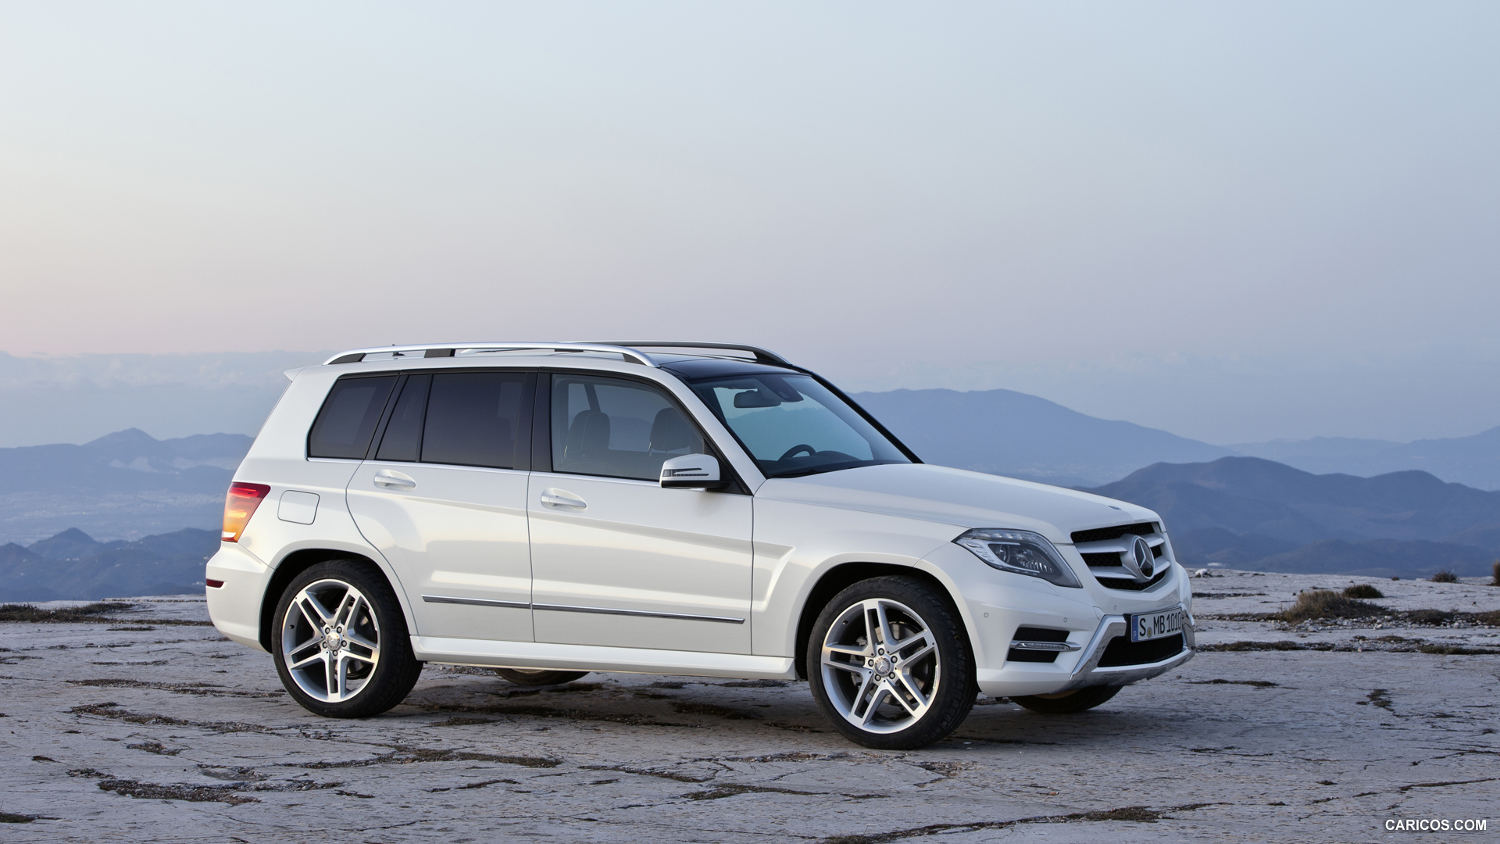 Comparison mercedes benz glk class glk350 vs for Small mercedes benz